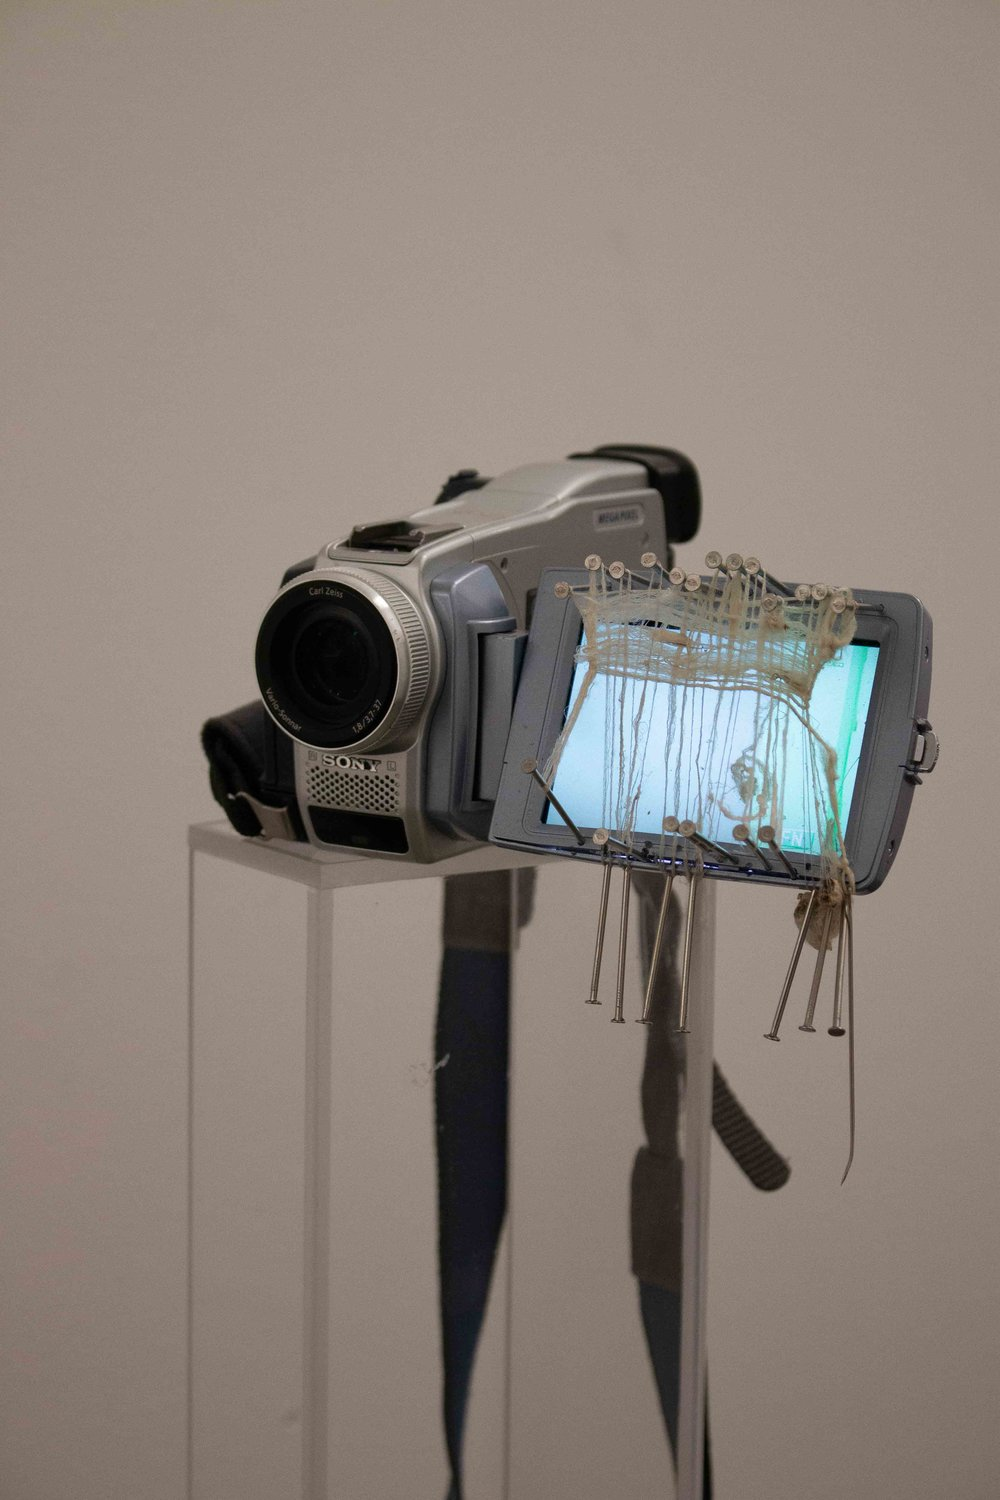 """""""Untitled Wormhole 06"""", Sony MiniDV Camcorder, Stainless Steel Nails, Exposed Silk (2 Silkworm Cocoons exposed to YouTube search algorithm, """"9/11 videos"""" played continually for 10 days), Needle , Needle. 4"""" x 6"""" x 8"""" (Inches). 2018."""